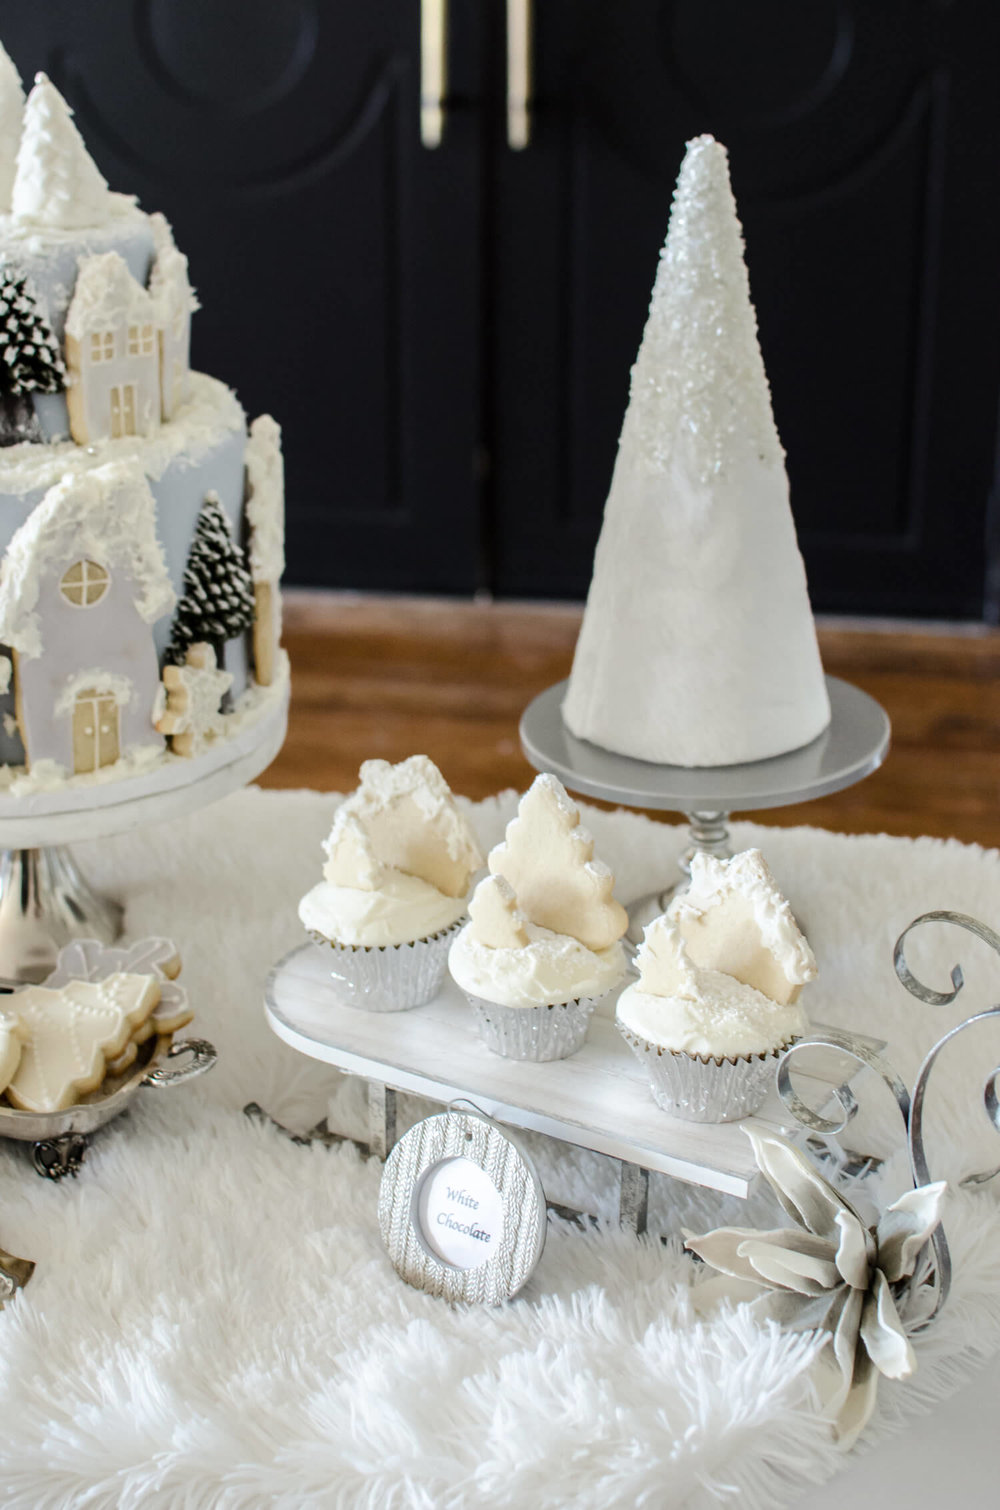 Cute ornament place cards serve as the food labels for this Winter Dessert Table. See more ideas from this Winter Wonderland themed Bridal Shower Inspiration created by Mint Event Design www.minteventdesign.com #winterweddingideas #weddingwedding #bridalshowerideas #winterwonderland #desserttable